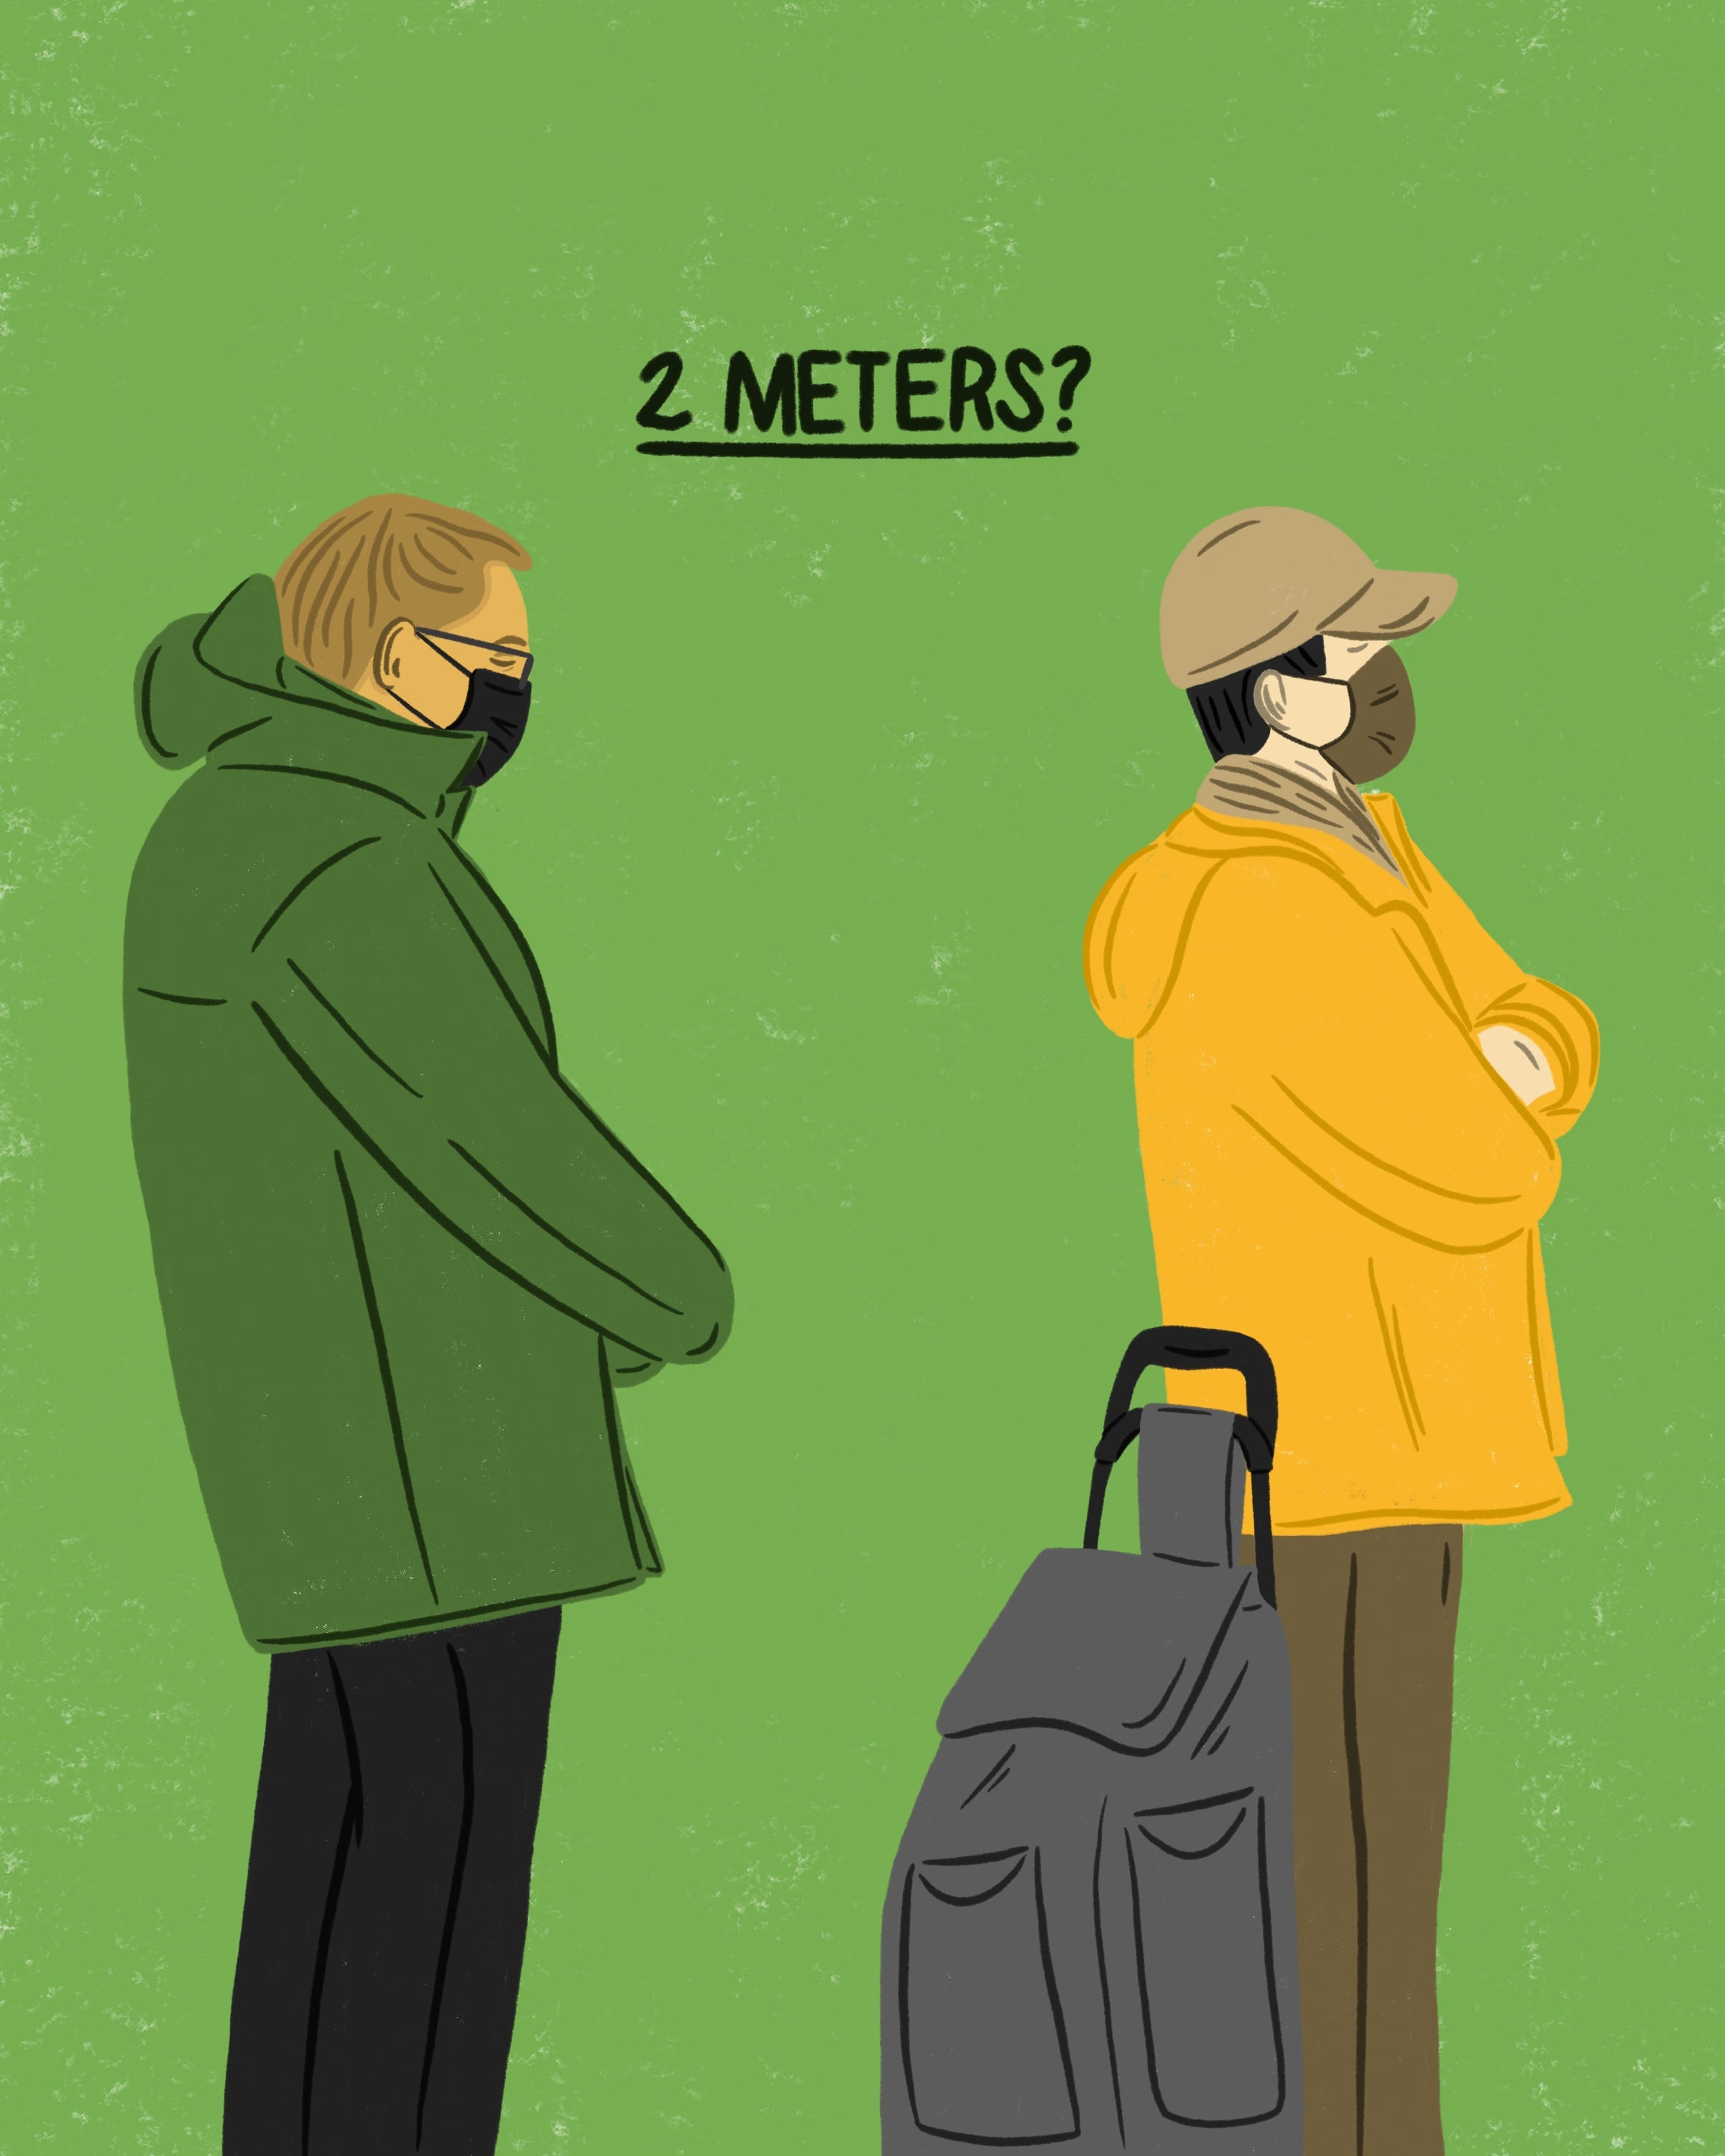 Illustration of 2 people waiting in line not standing 2 meters apart.